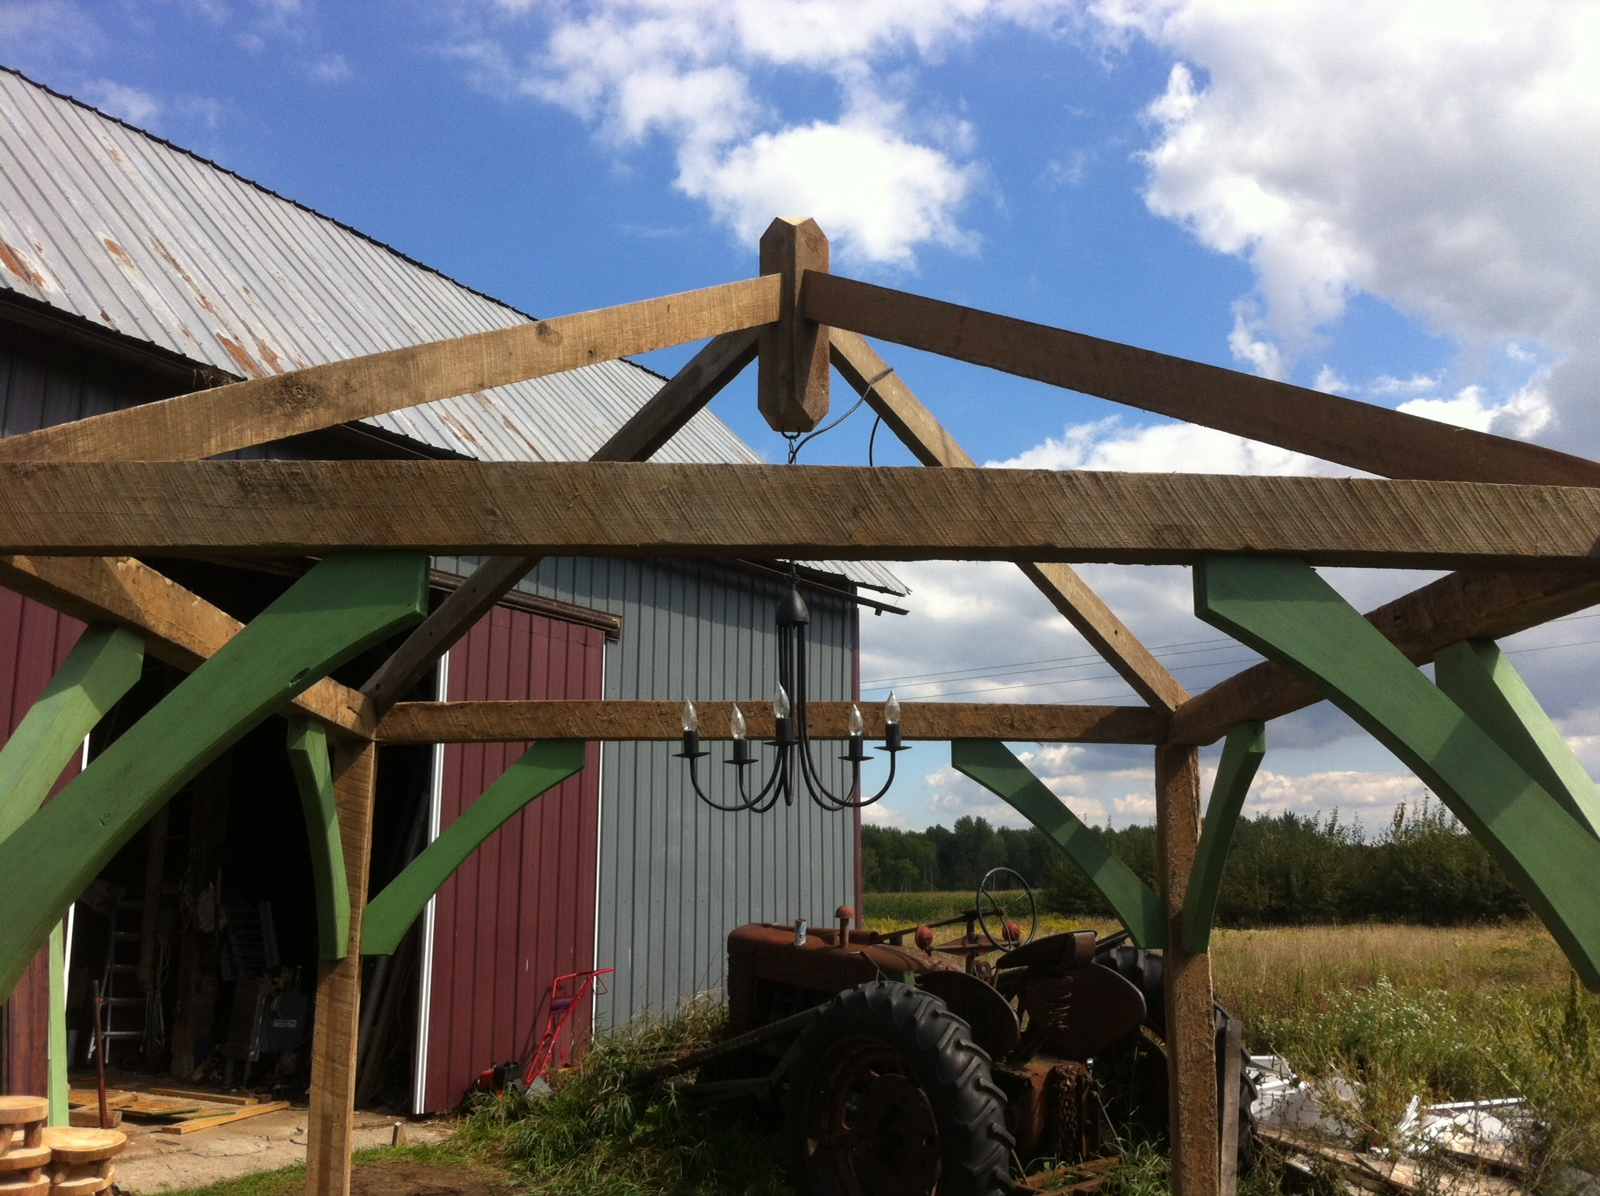 For Sale Rustic Wedding Gazebo Out Of Old Barn Wood The